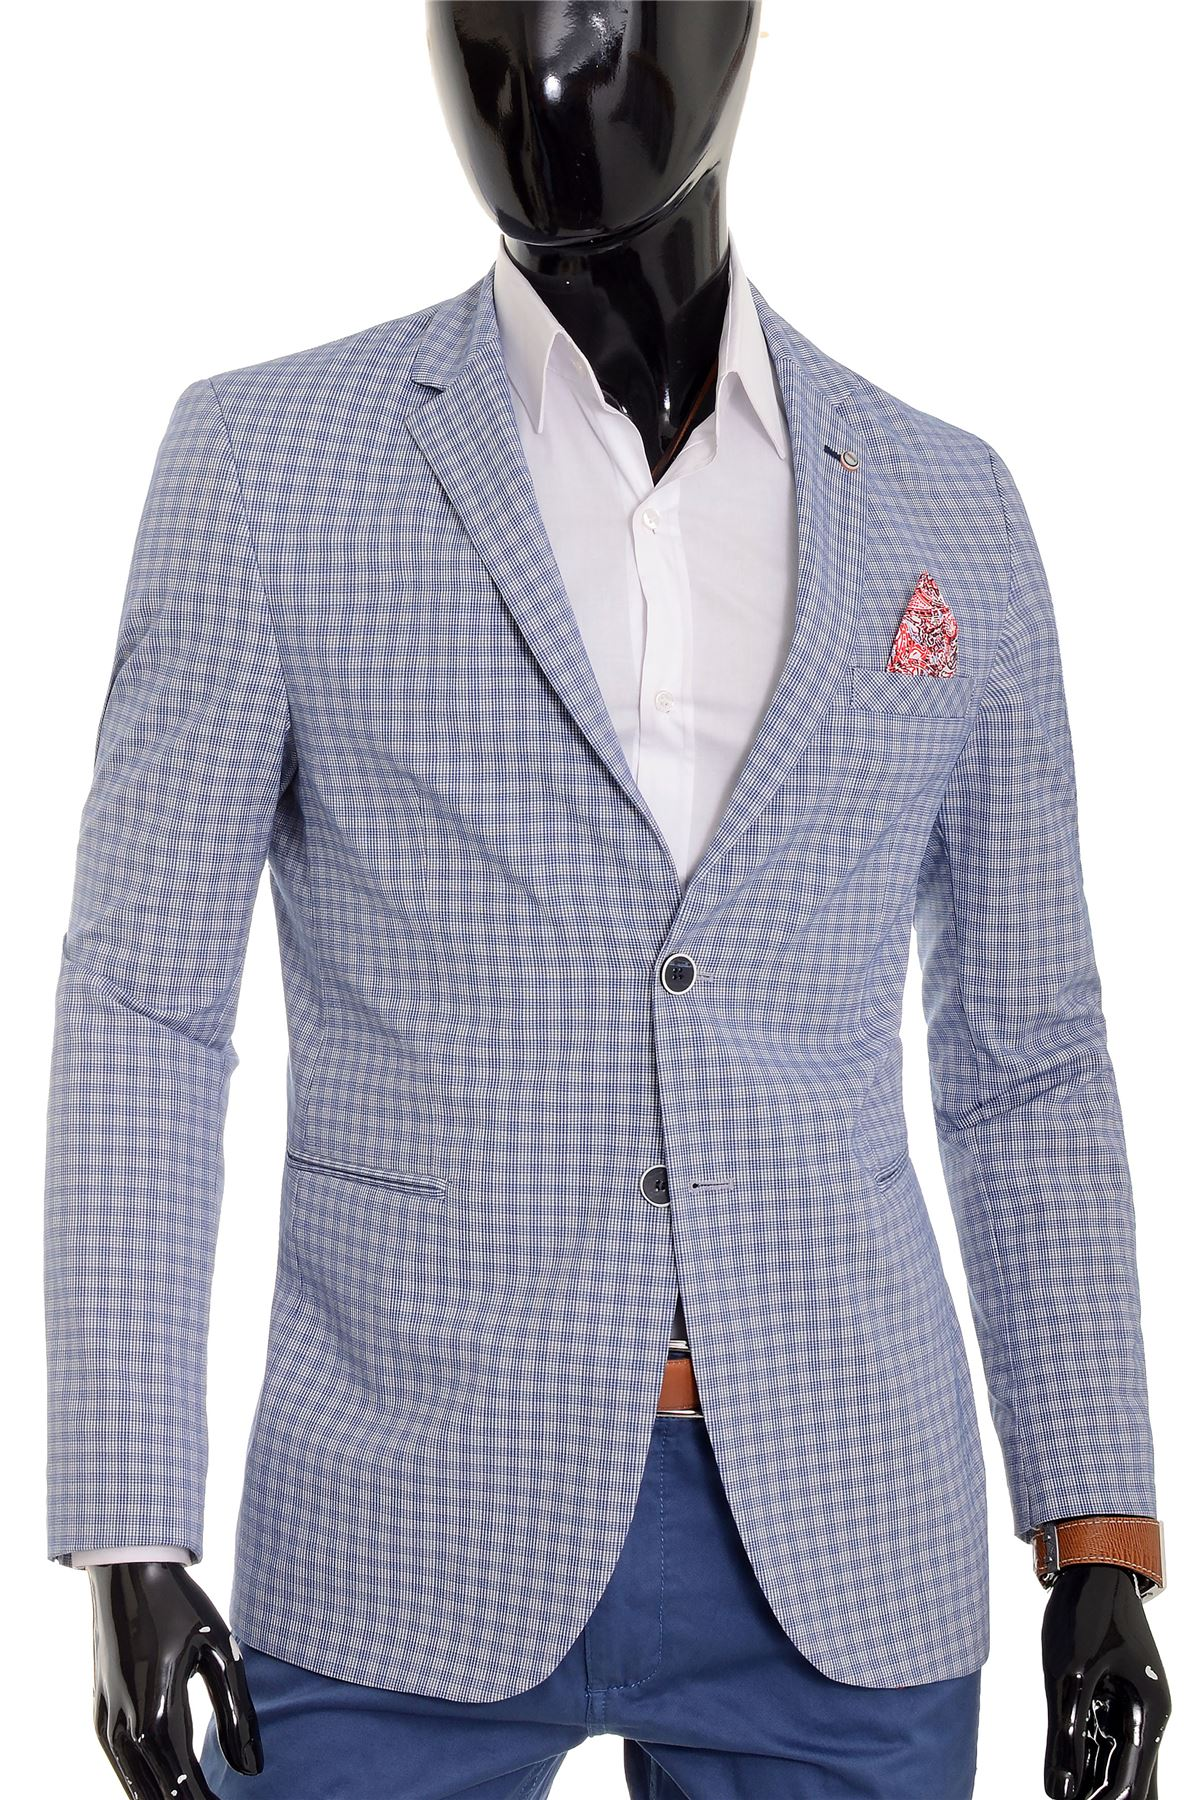 Mens-Checkered-Blazer-Jacket-Formal-Blue-Brown-Paisley-Finish-Cotton-Regular-Fit thumbnail 11